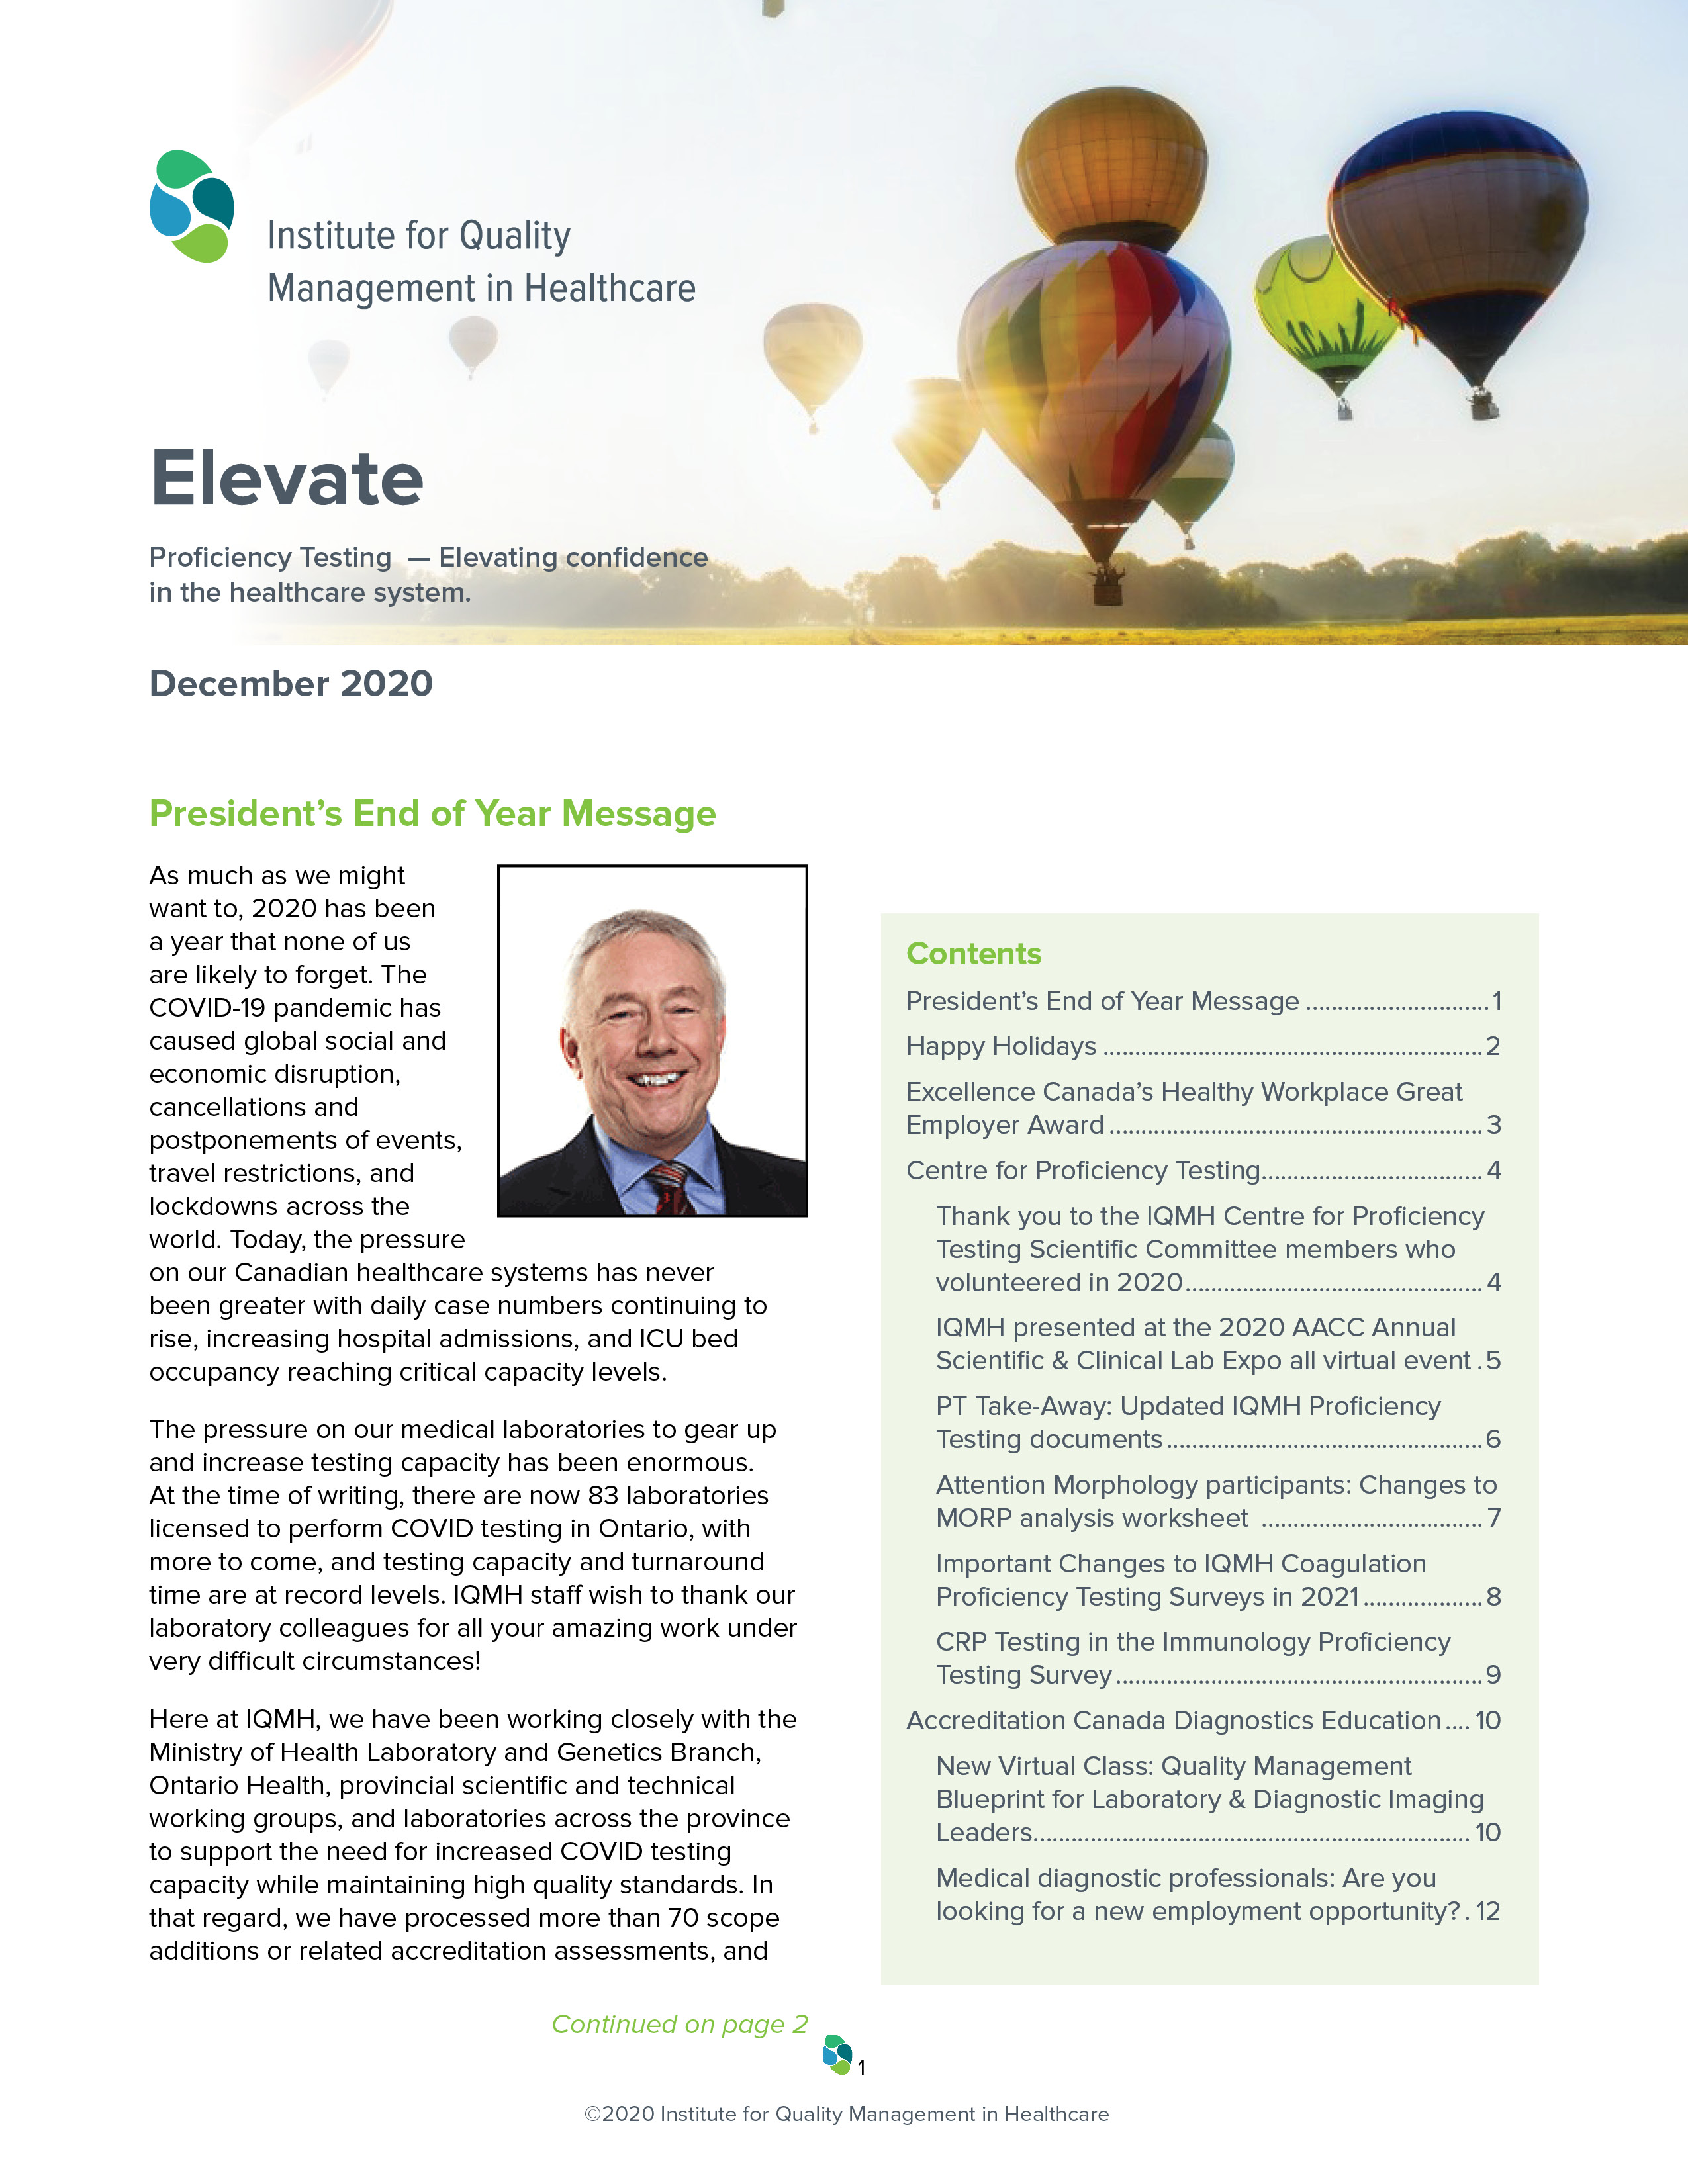 Elevate, December 2020 - The IQMH Newsletter